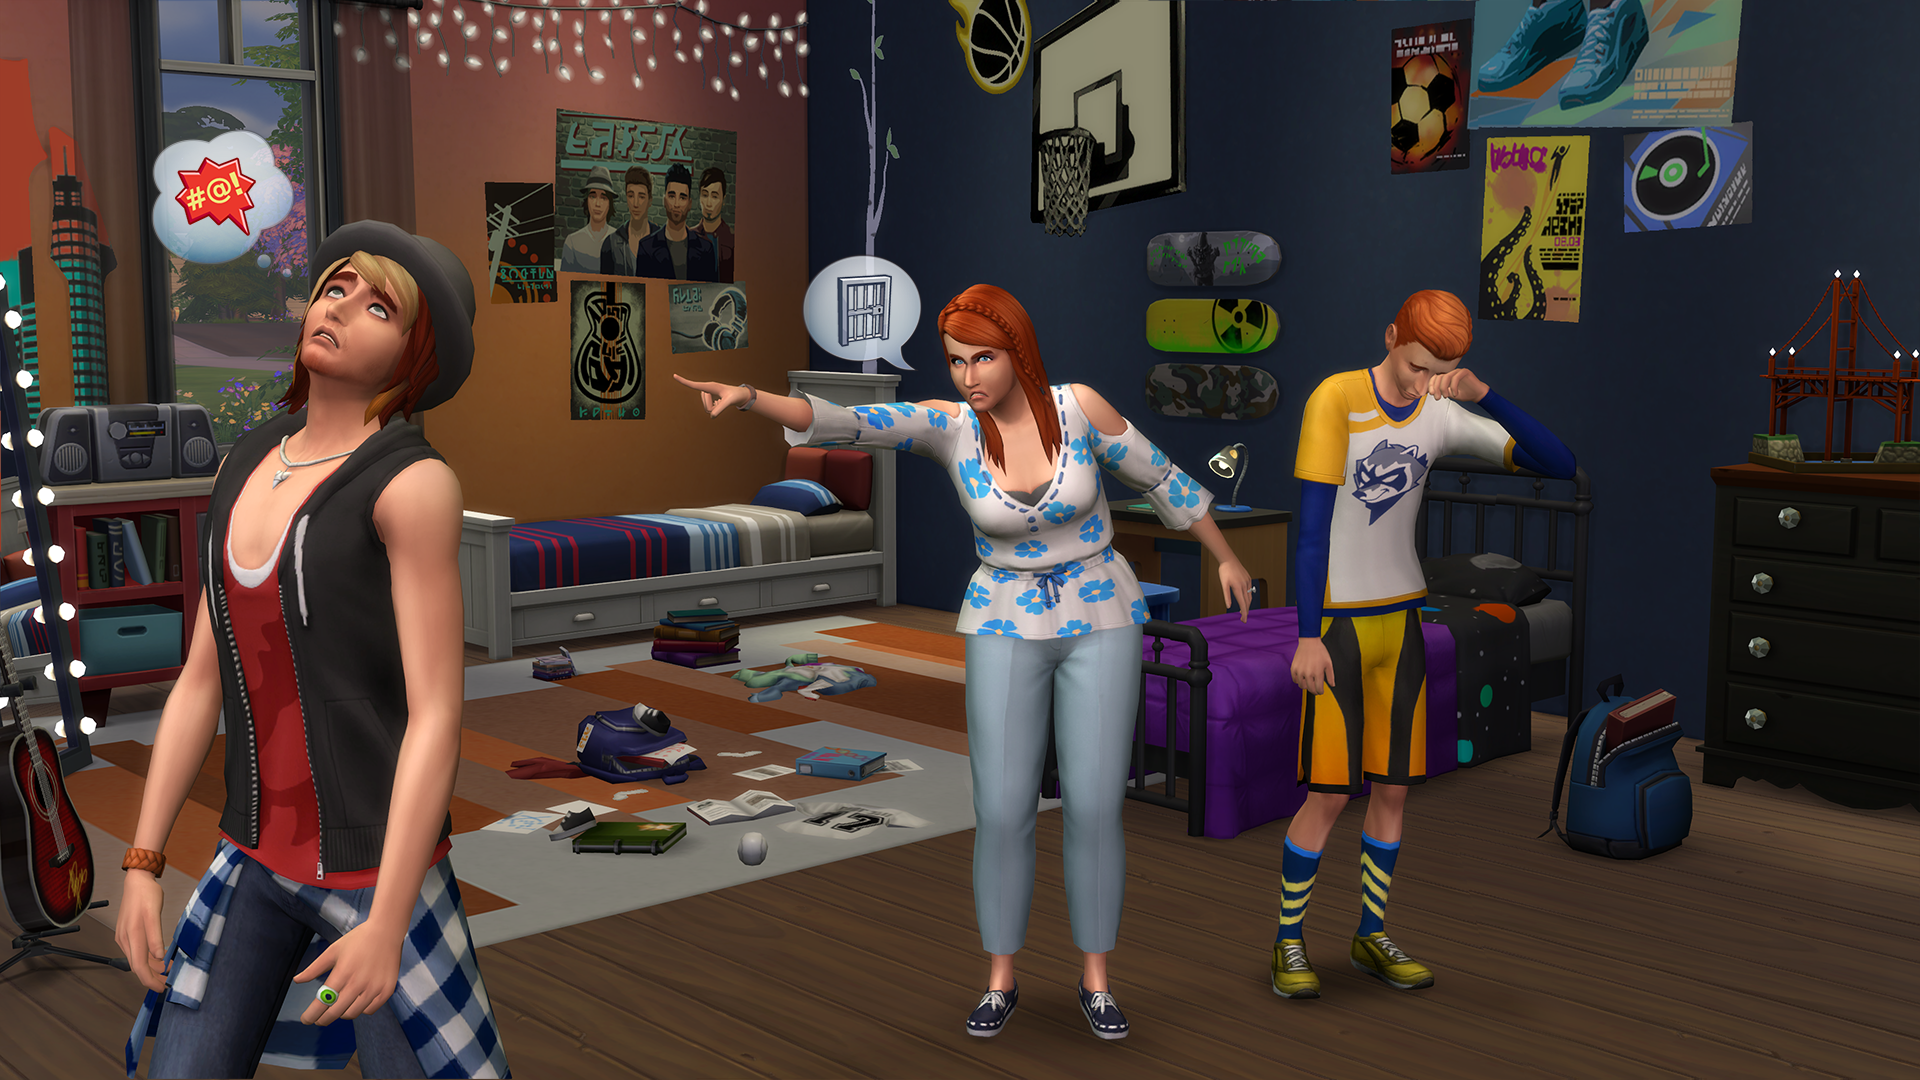 The Sims 4: Parenthood | The Sims Wiki | FANDOM powered by Wikia